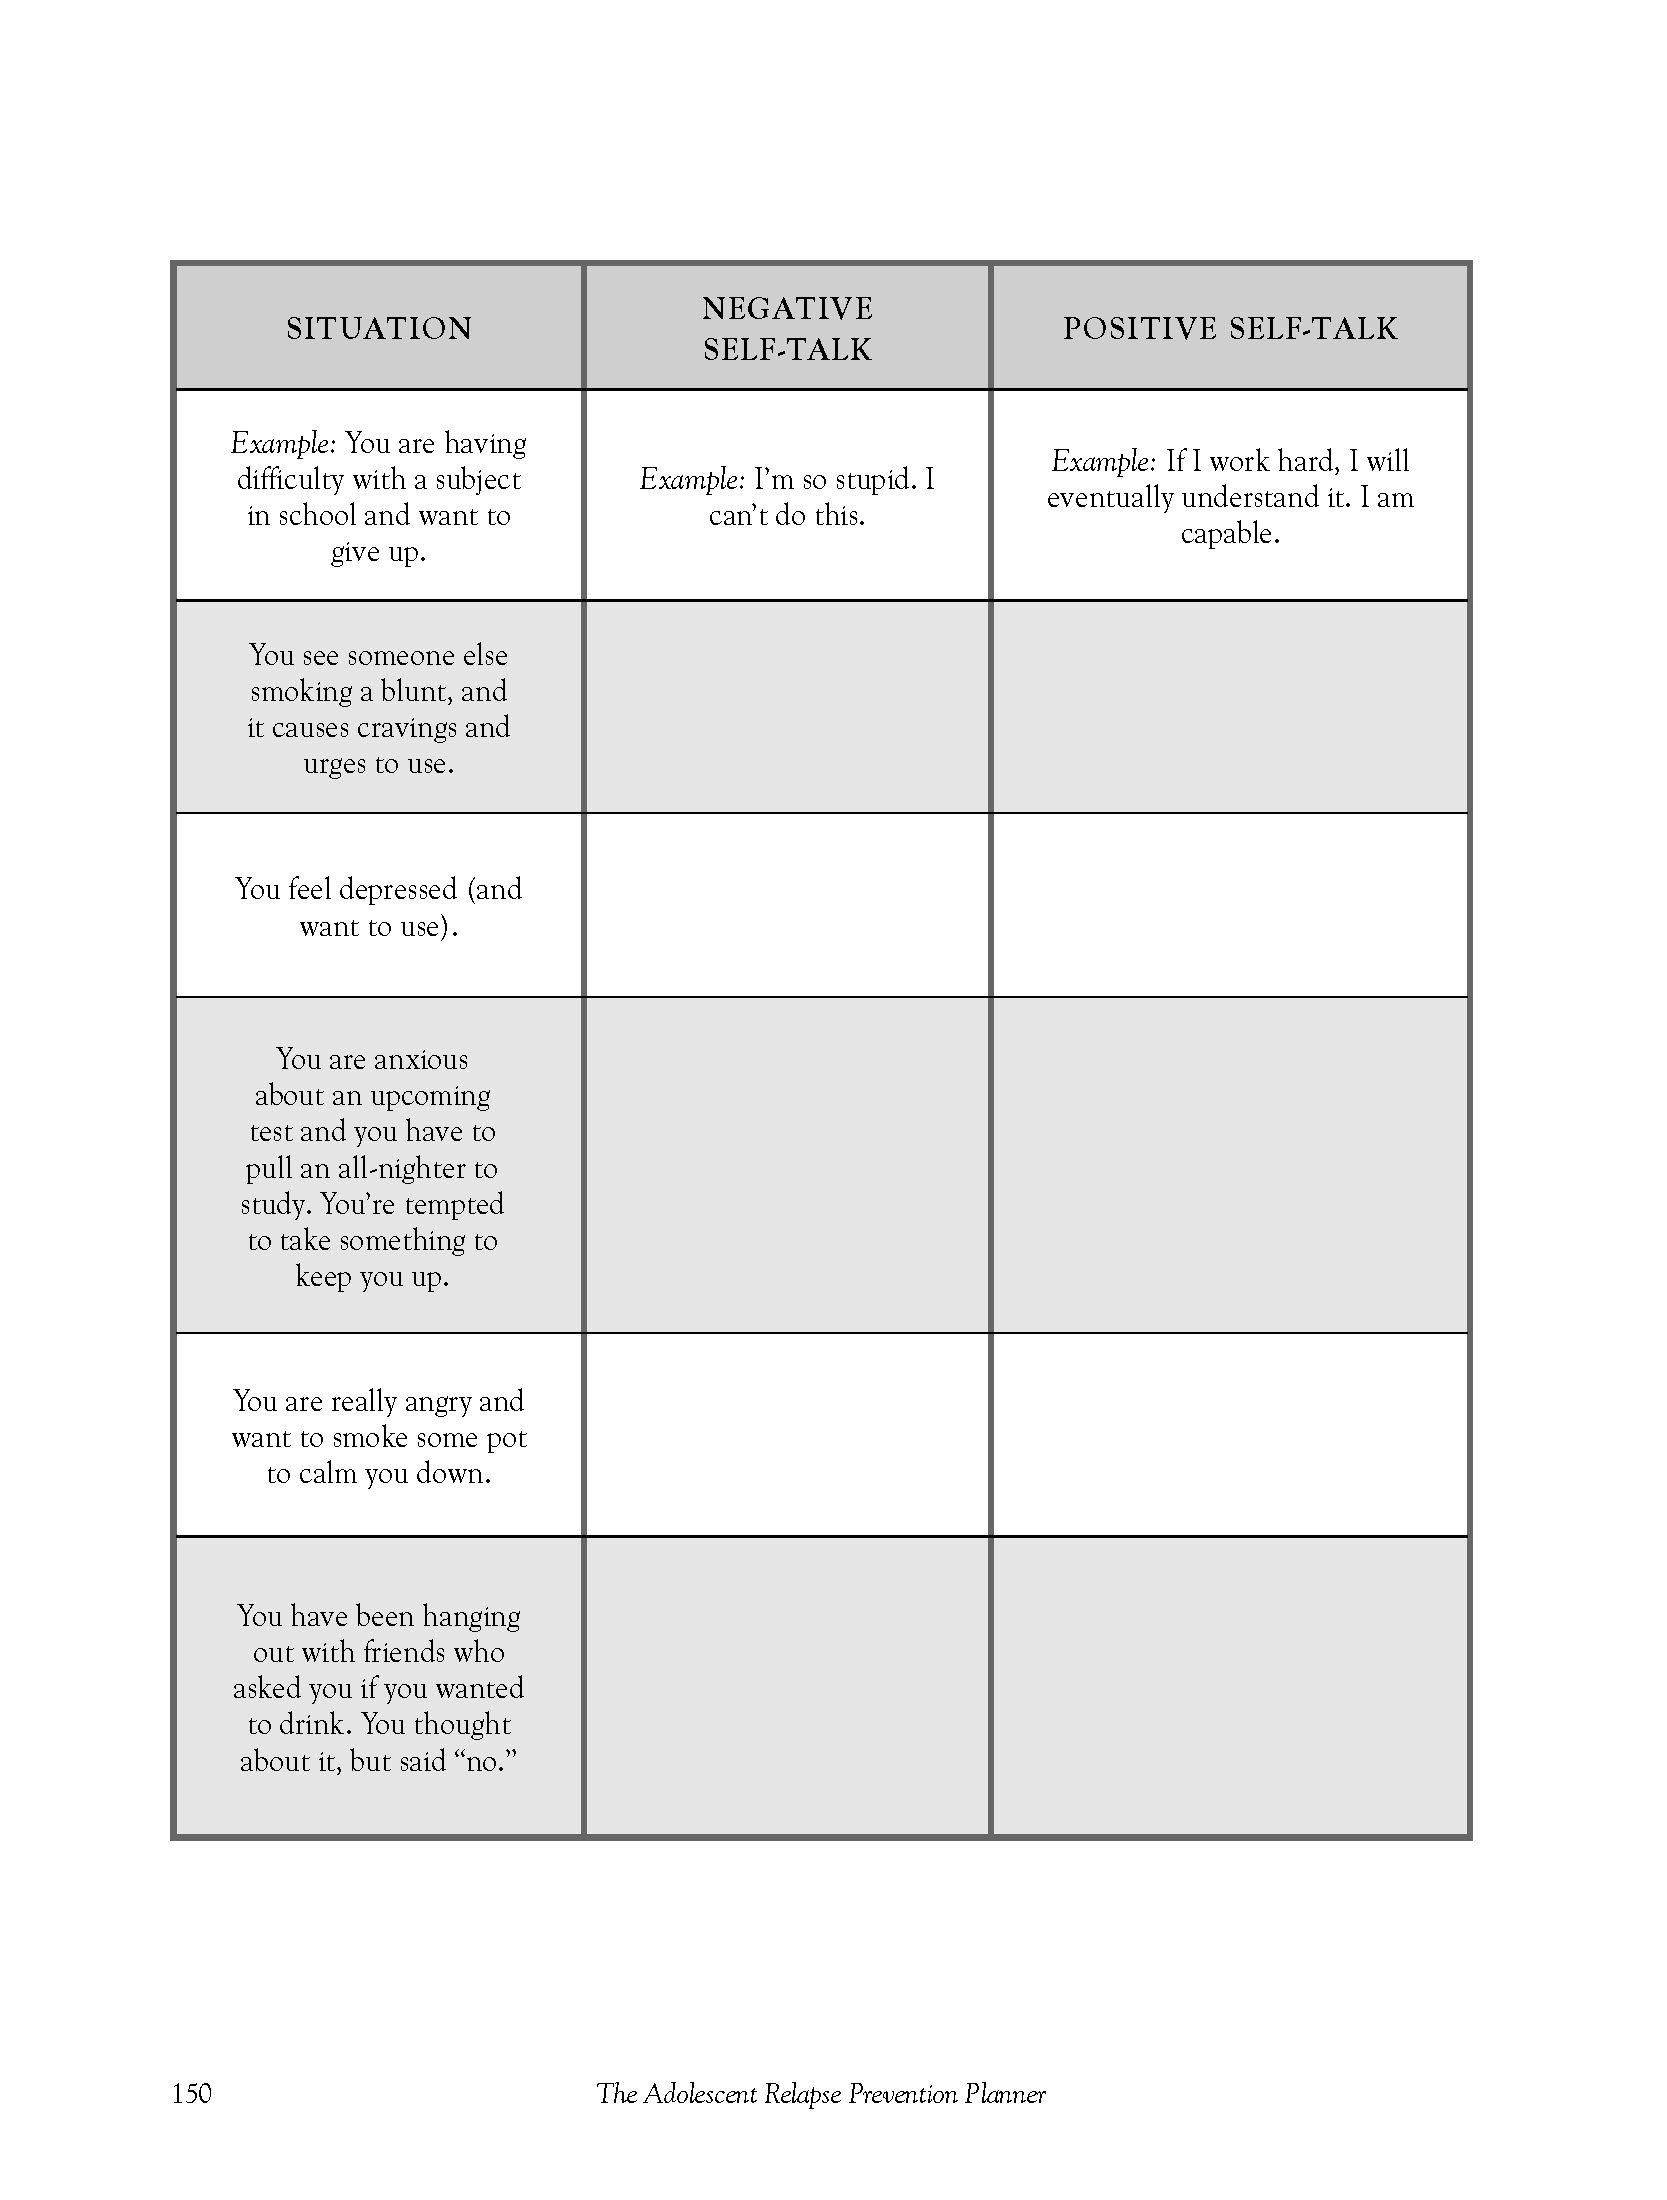 worksheet Printable Self Esteem Worksheets a multi use exercise worksheet on self talking taken from the adolescent